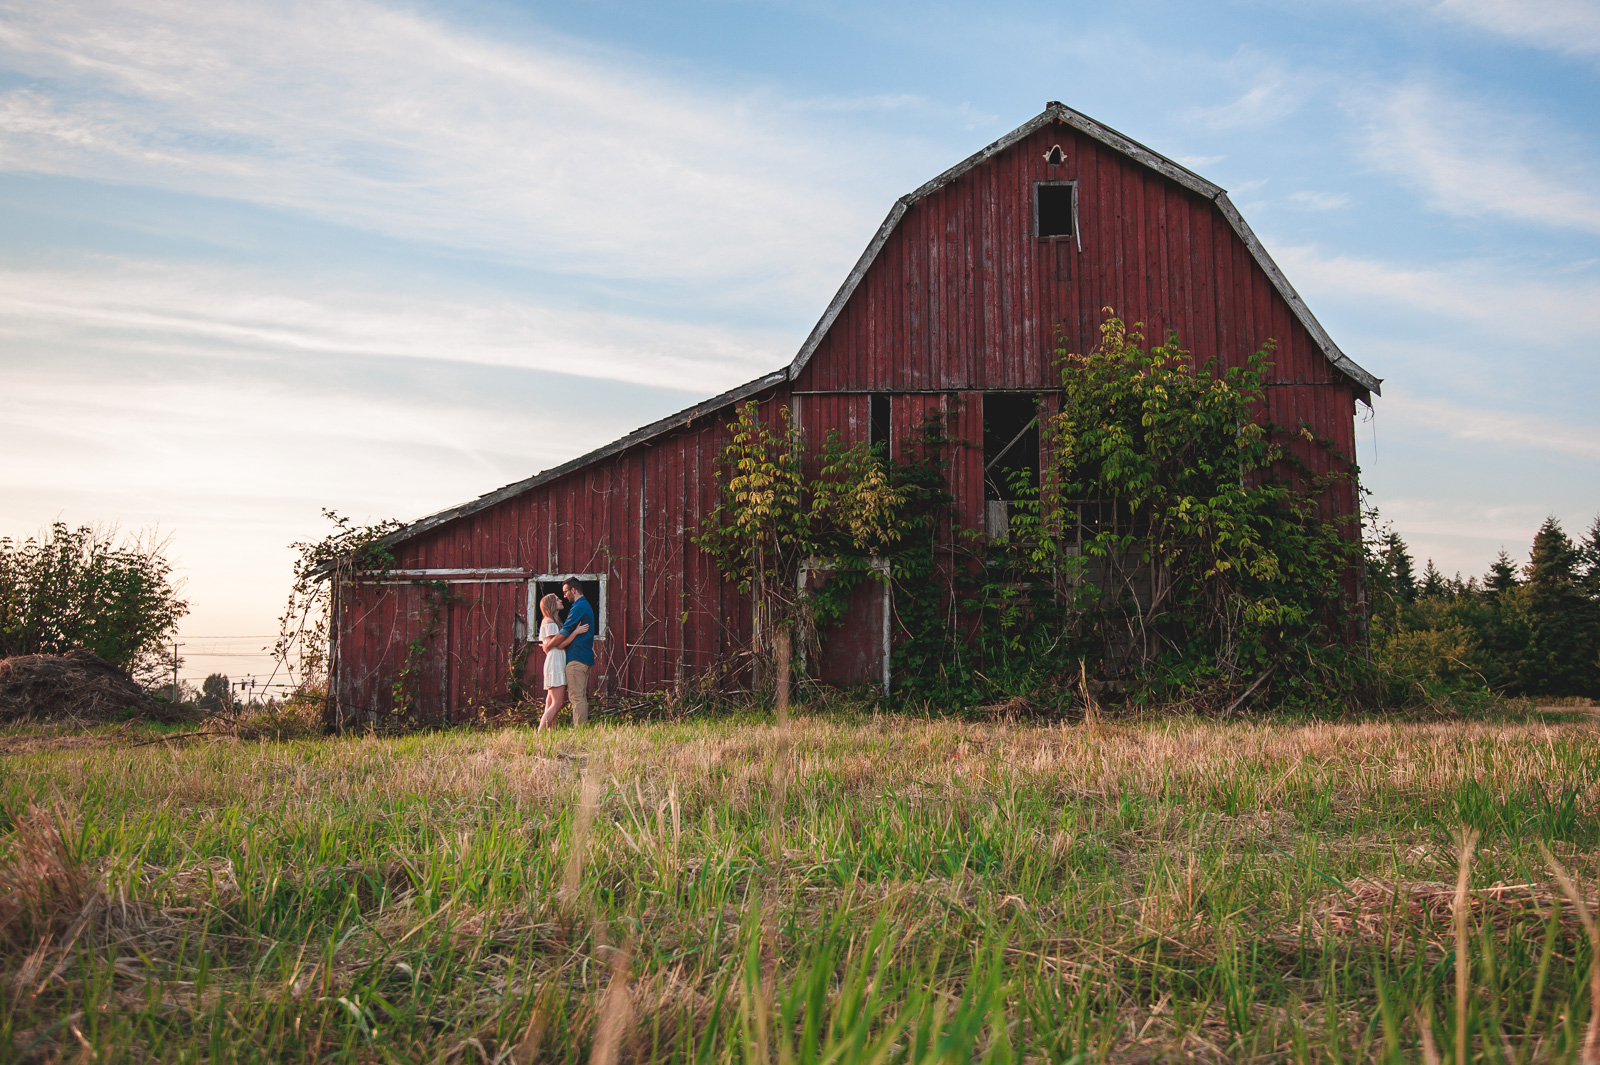 vancouver-island-wedding-photographers-campbell-valley-park-engagement-session-11.jpg